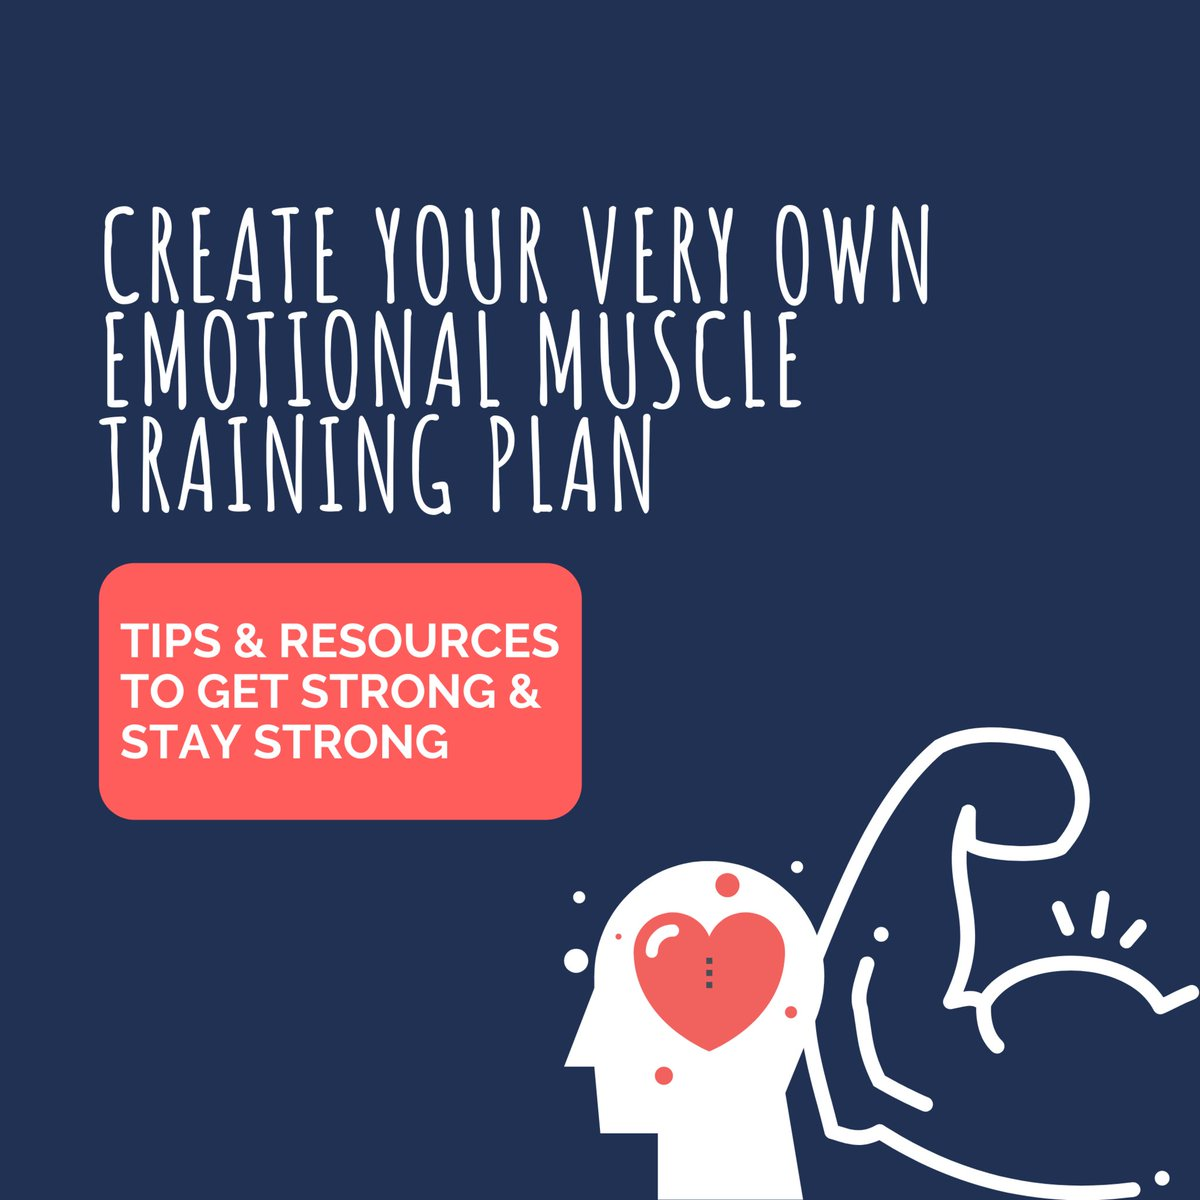 Strengthening our #emotionalmuscle enables us to build resilience so we can handle whatever life throws at us. 💪 Everyone's #mentalfitness journey is different; the key is to find what works for you and keep working at it!